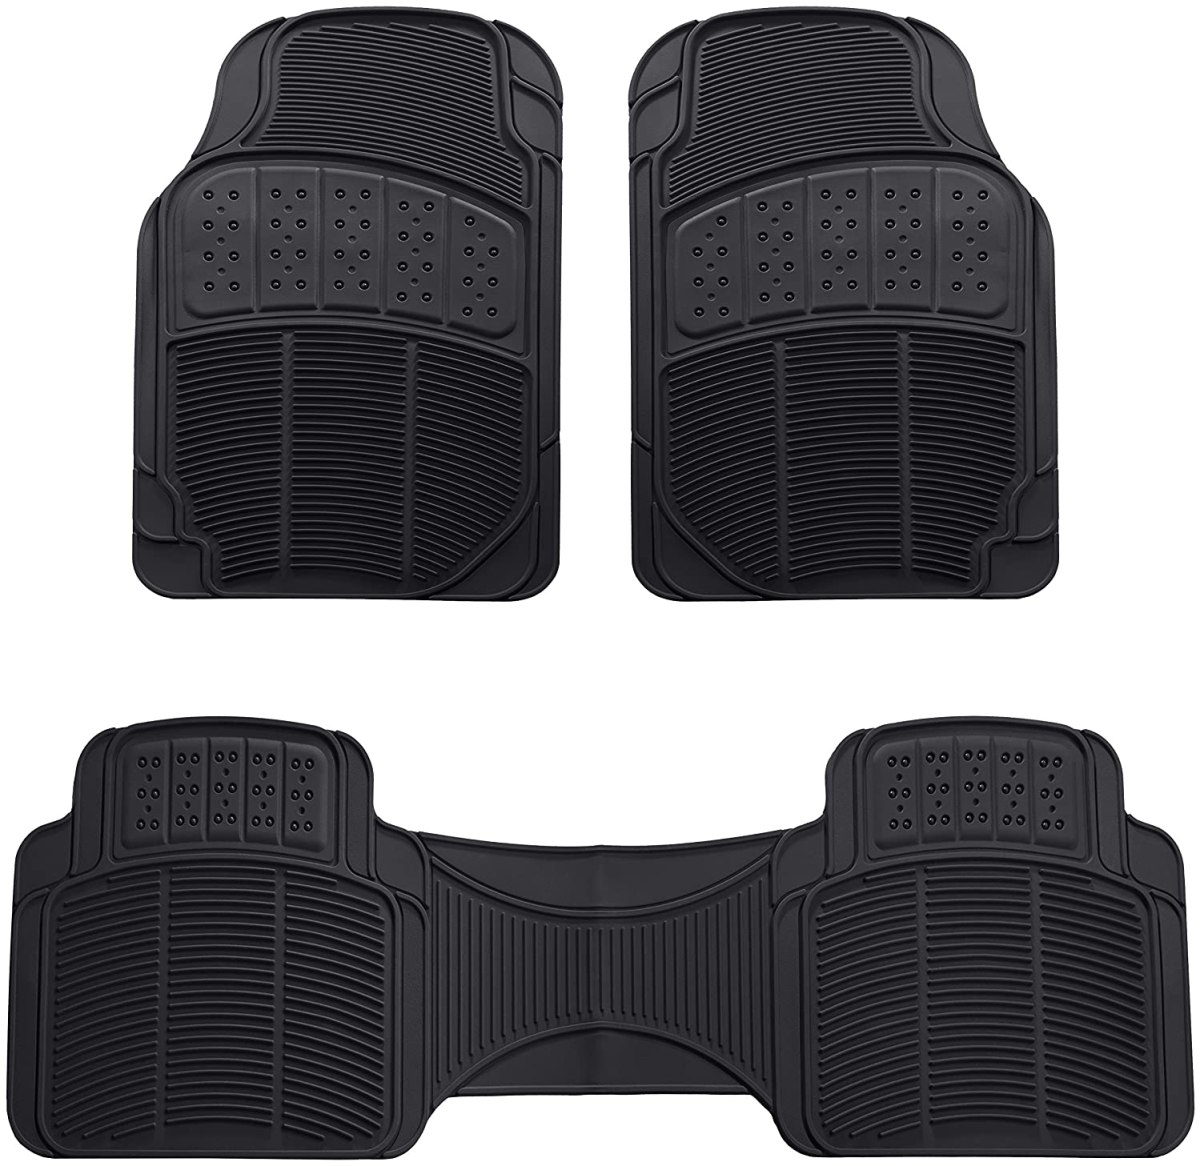 Best Floor Mats Reviews AmazonBasics 3 Piece Car Floor Mat, Black